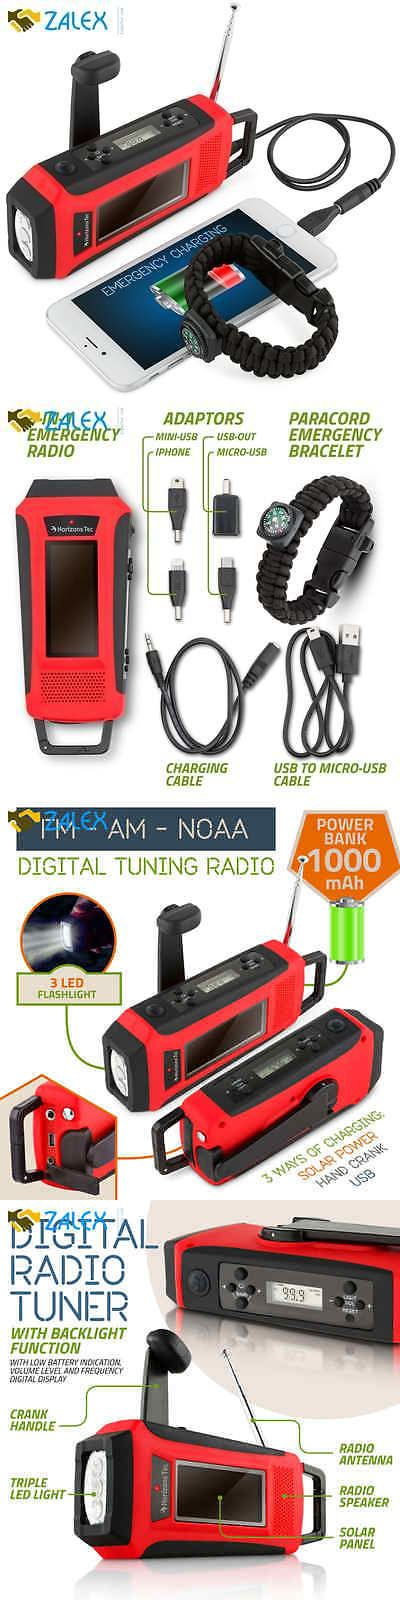 Portable AM FM Radios: Emergency Solar Hand Crank Noaa Weather Radio Led Flashlight Charger Powered Mob -> BUY IT NOW ONLY: $31.99 on eBay!